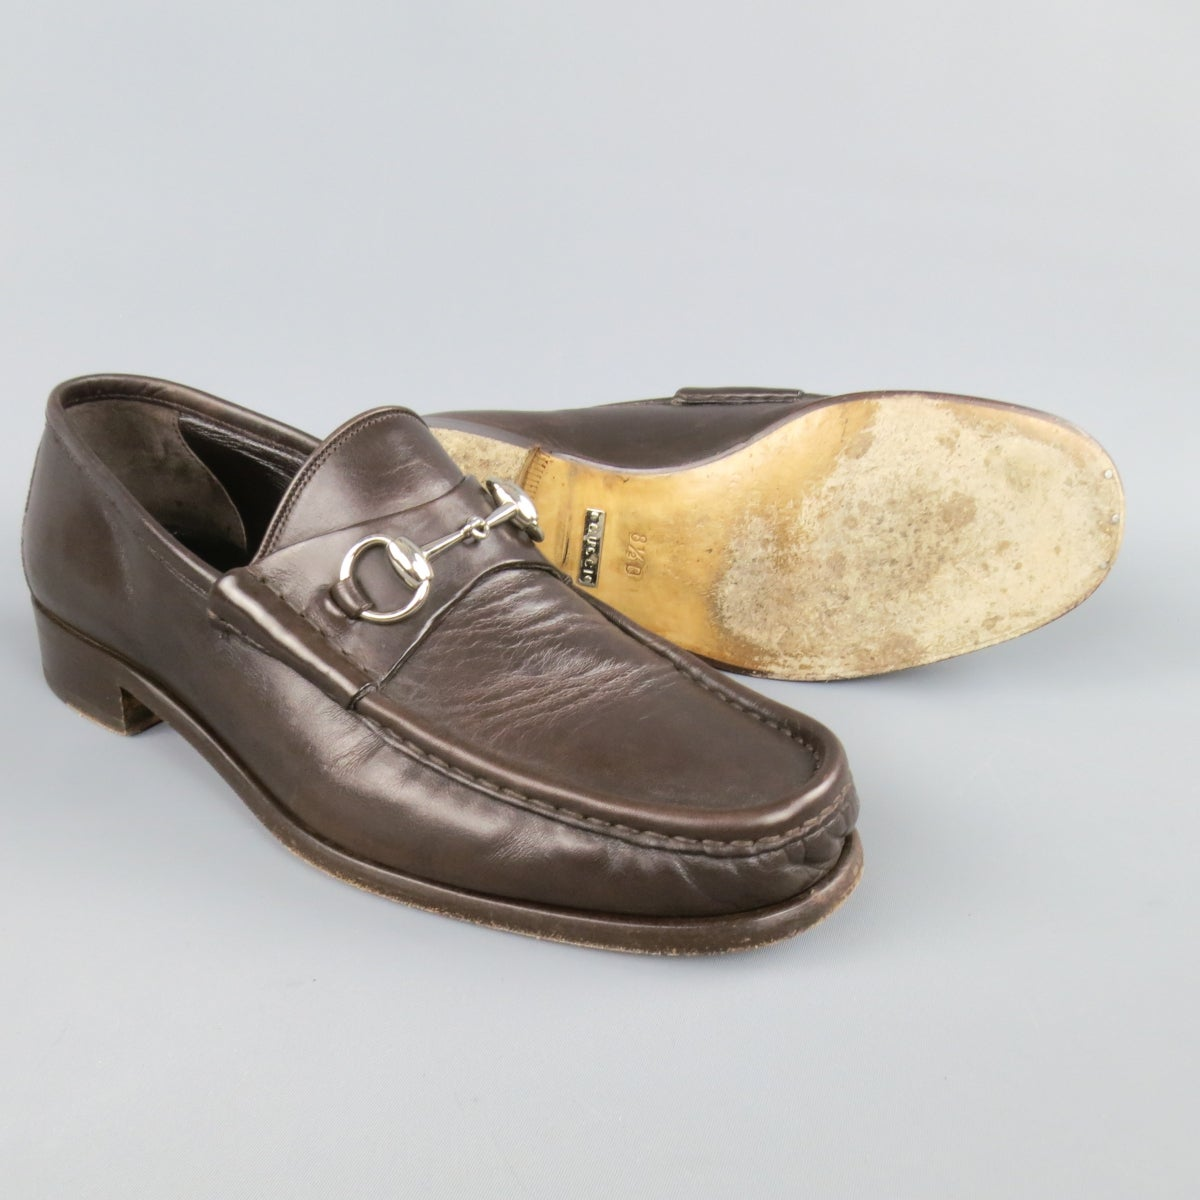 8c100992a Men's GUCCI Size 9.5 Brown Solid Leather Silver Horsebit Loafers at 1stdibs